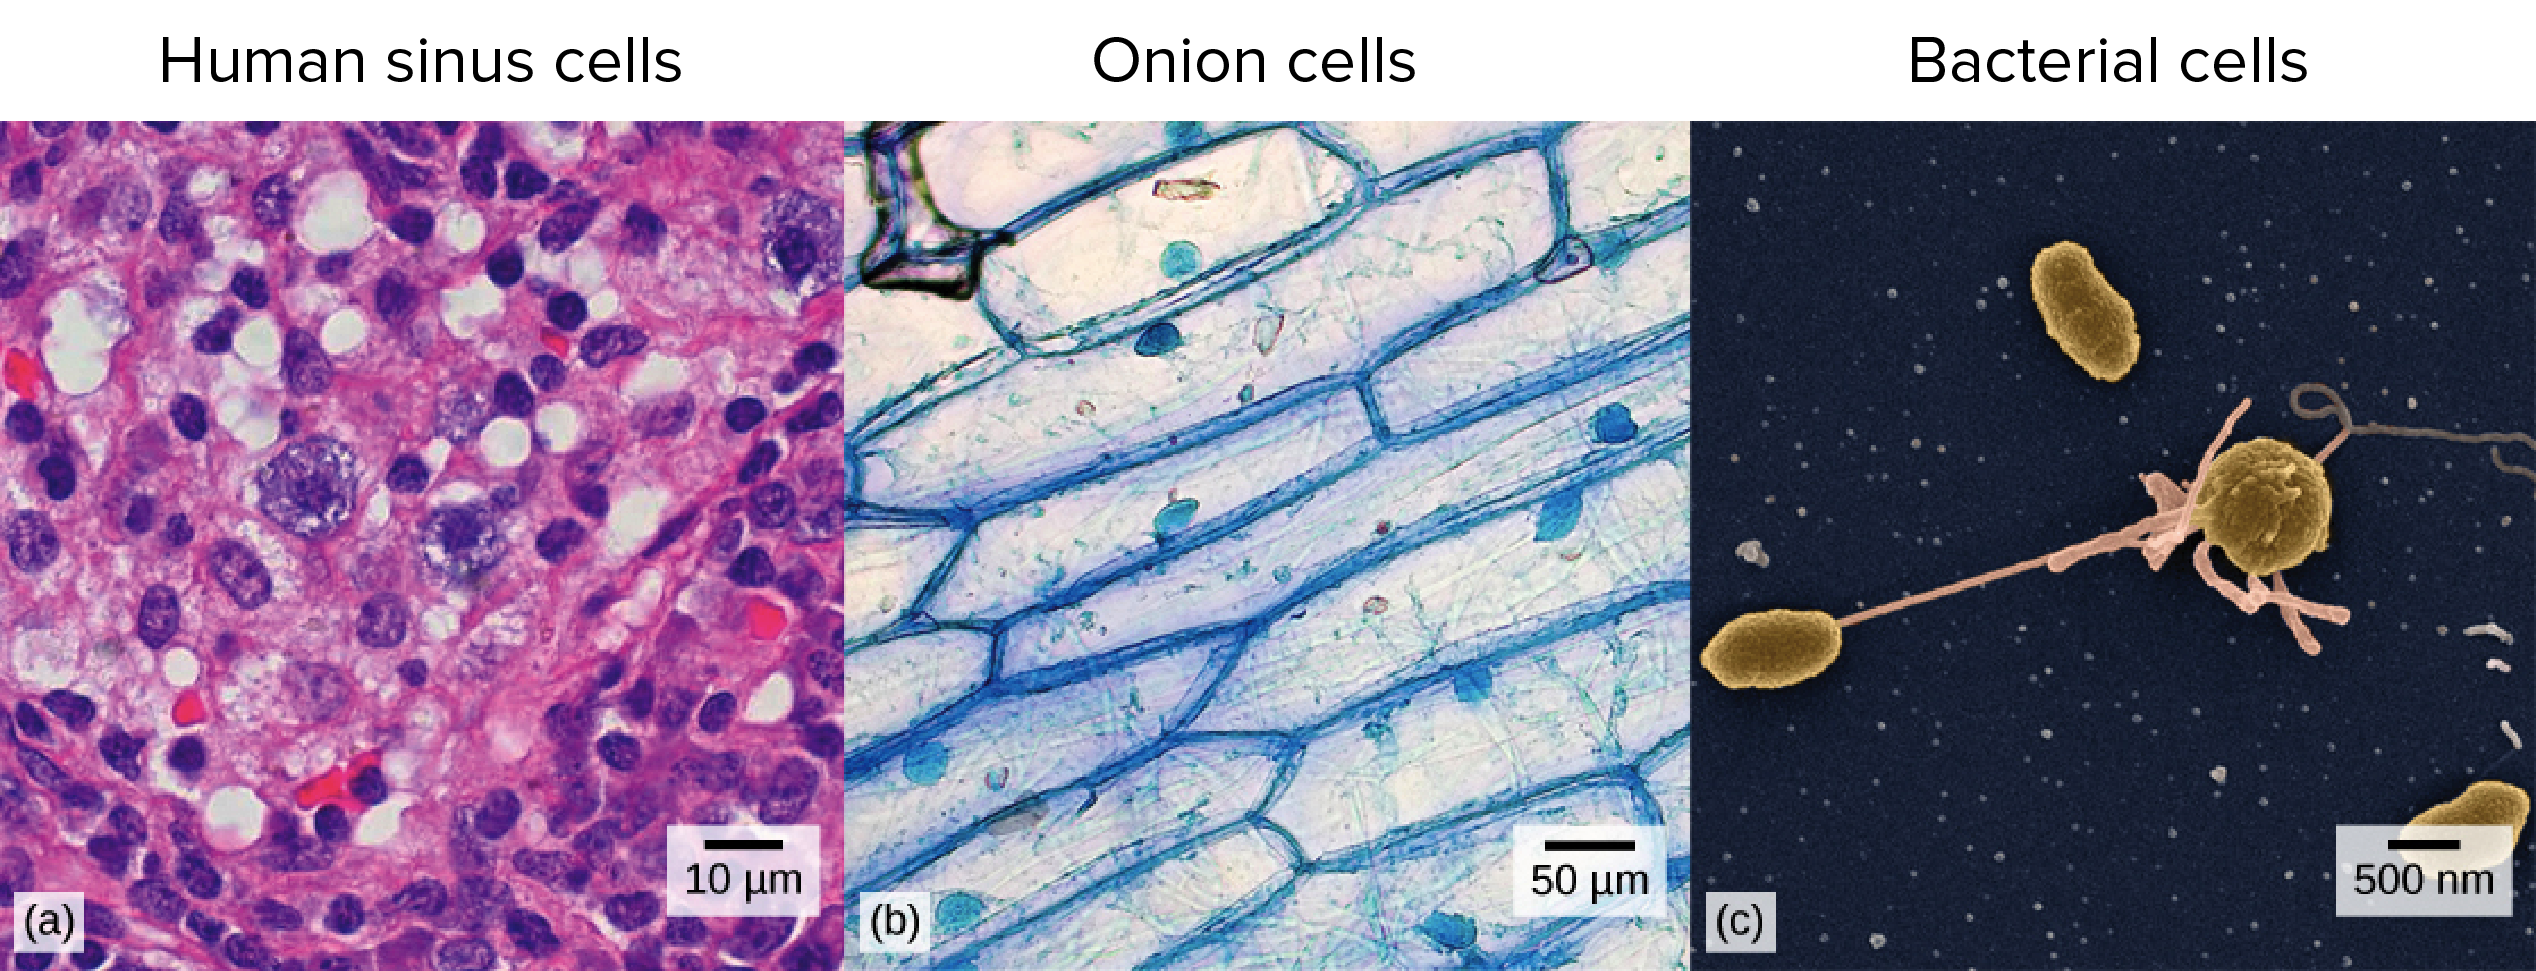 Micrographs of human, onion, and bacterial cells.